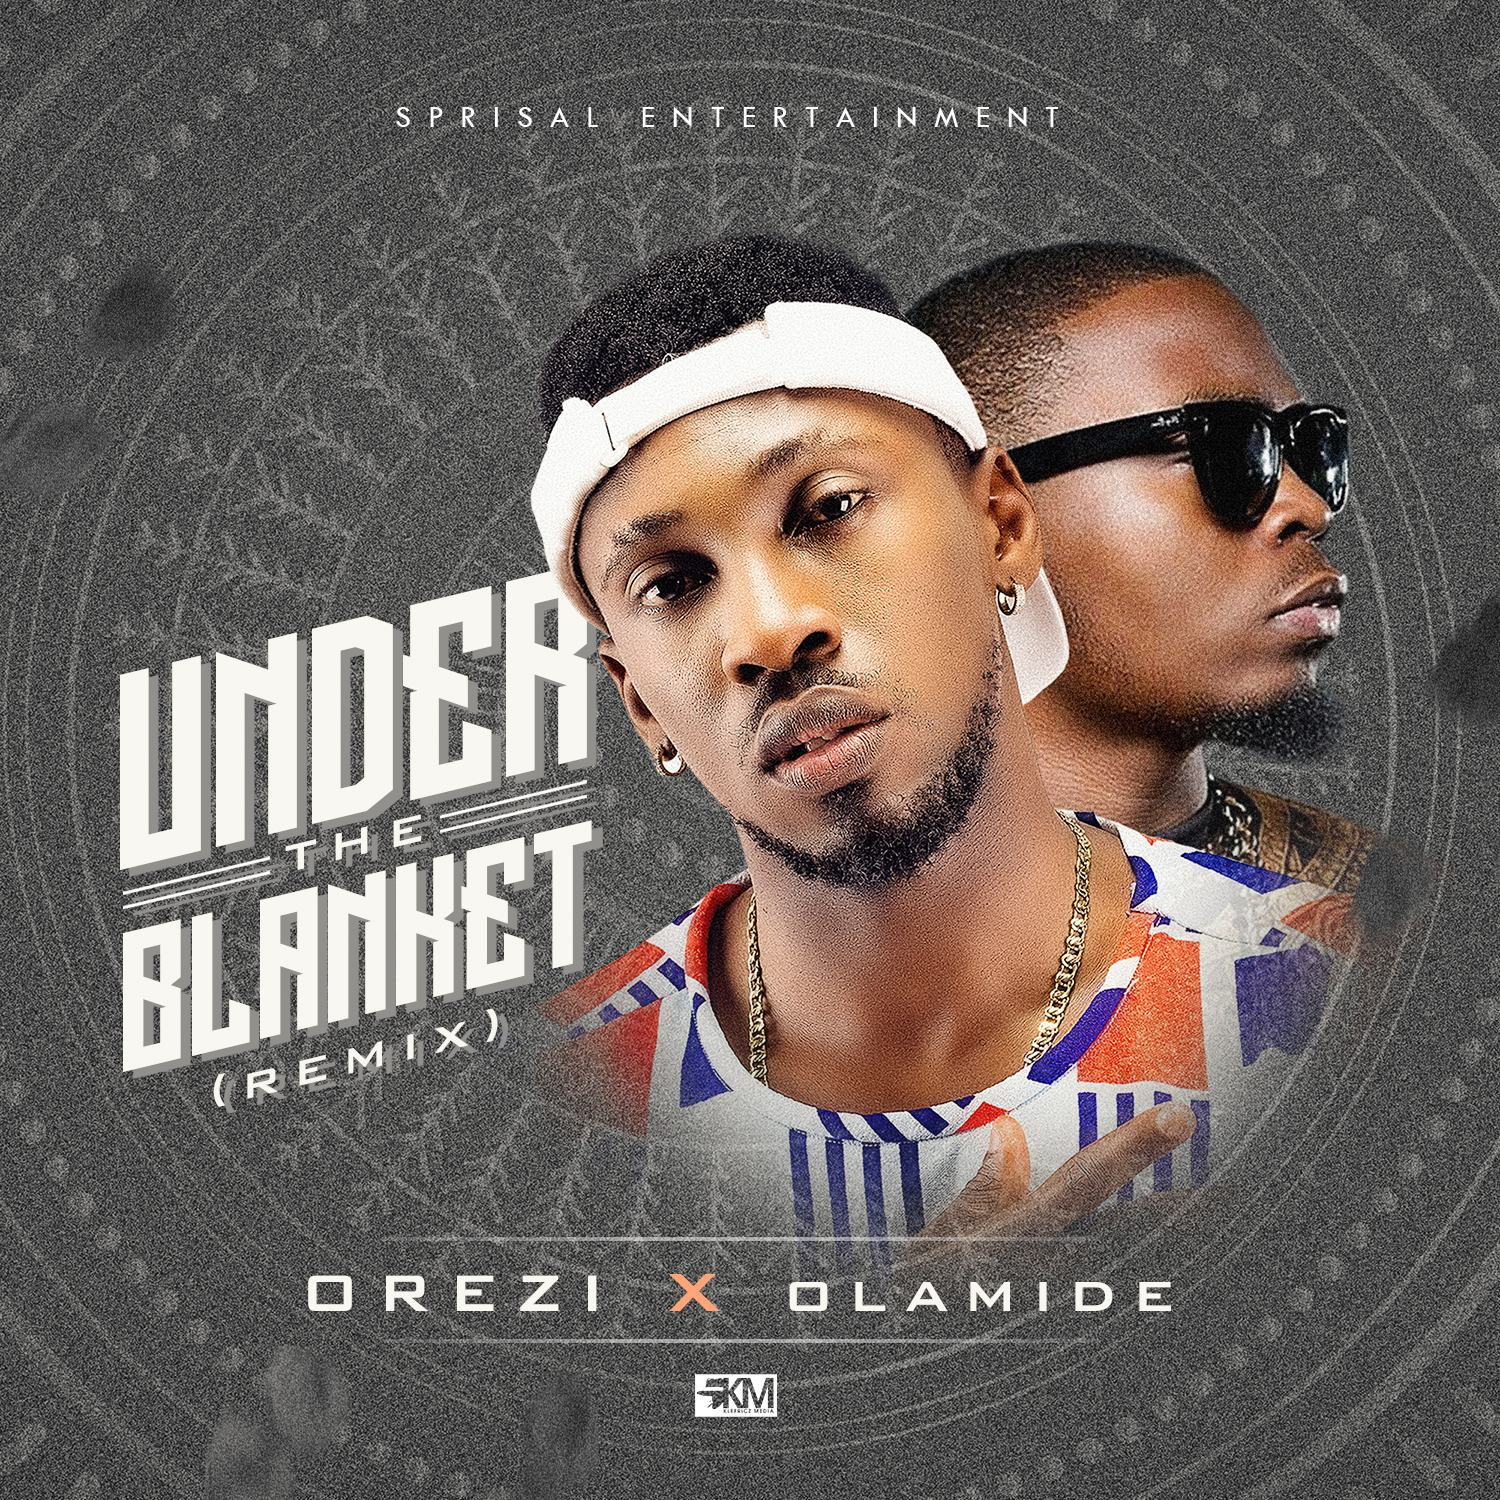 Orezi - Under the blanket ft Olamide